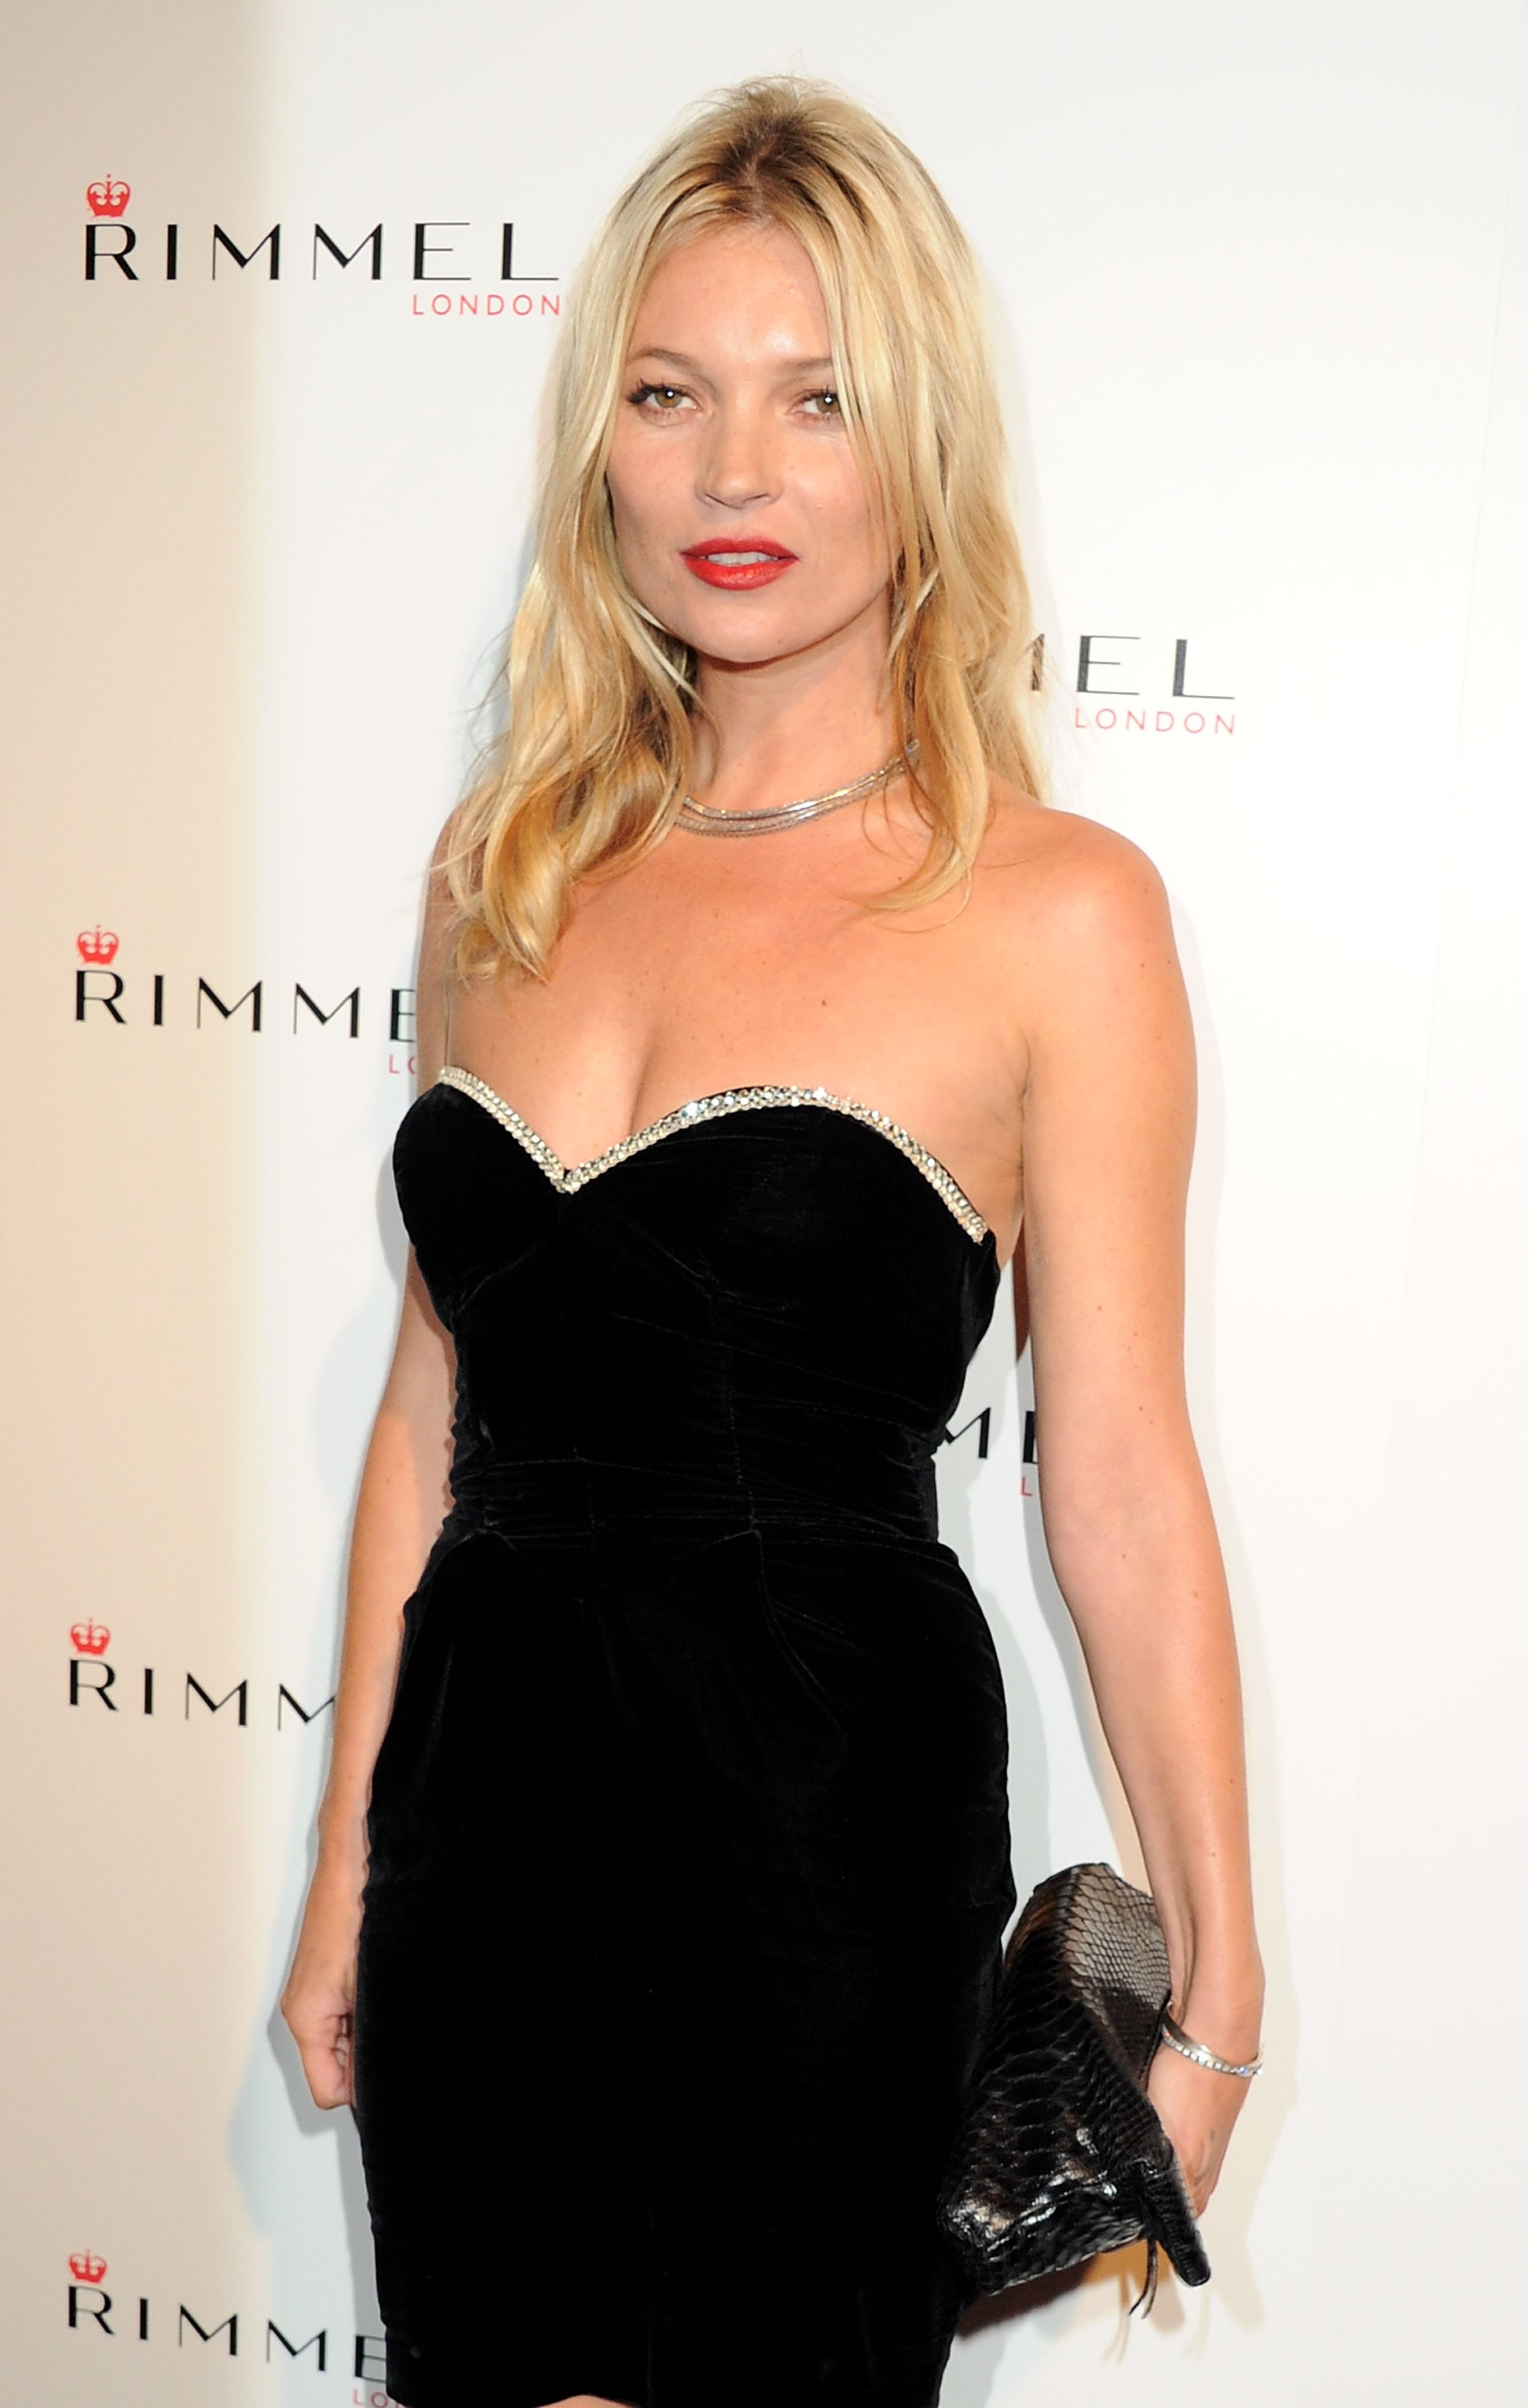 Kate Moss at a Rimmel London party.